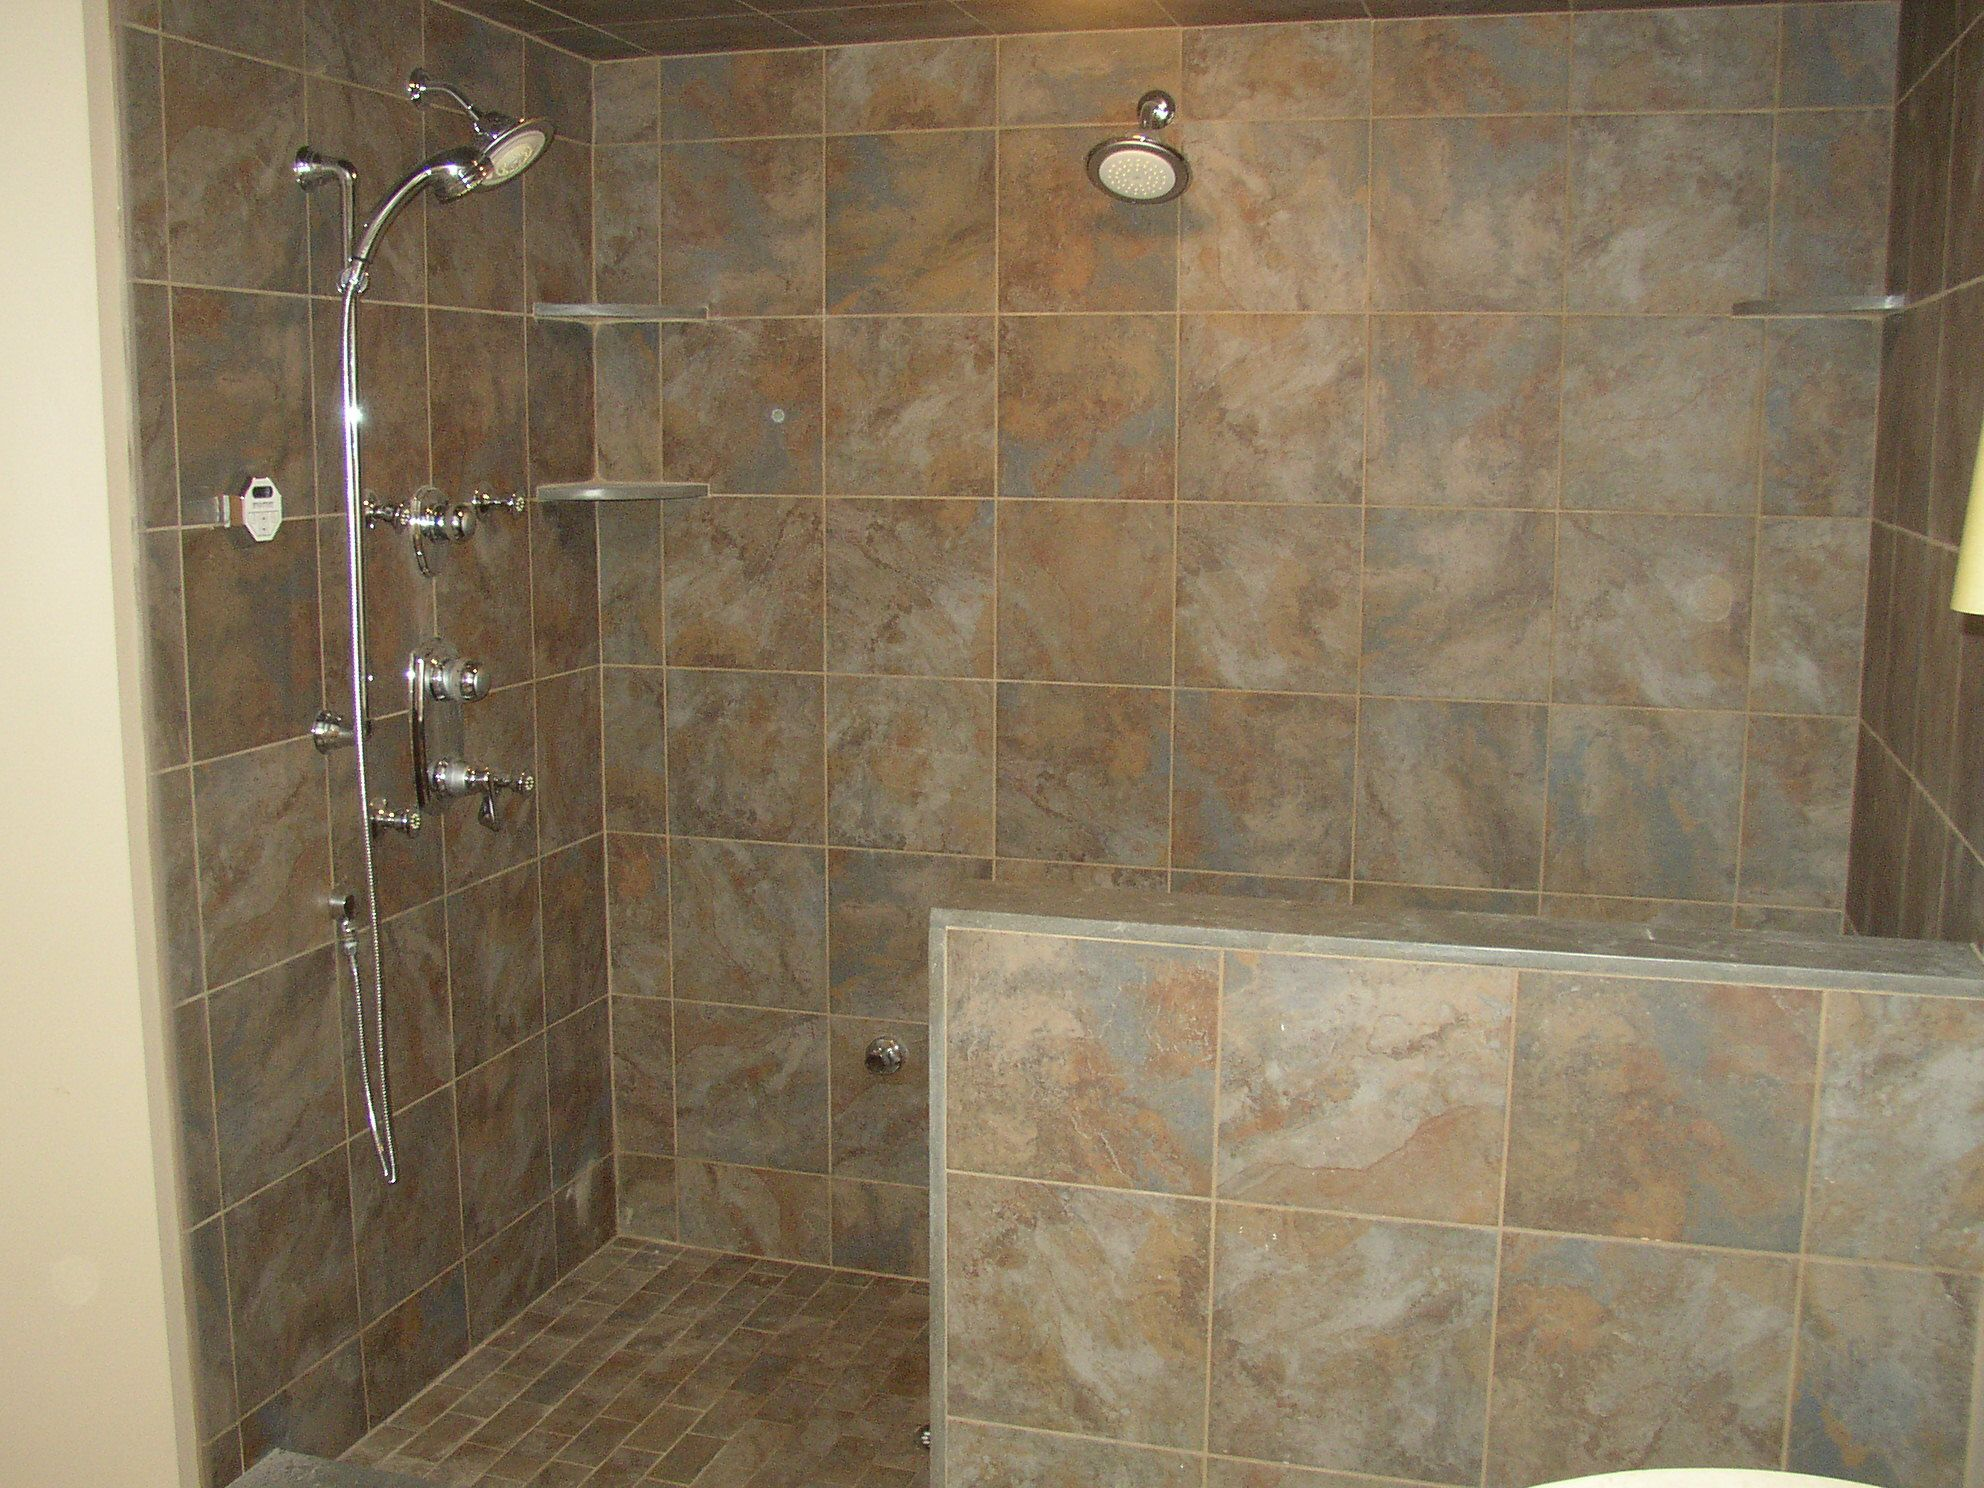 Design Spa Showers flooring ceramic tile is the popular choice consider adding an showers doorless shower designs with nickle taps and multiple head for small bathrooms desig